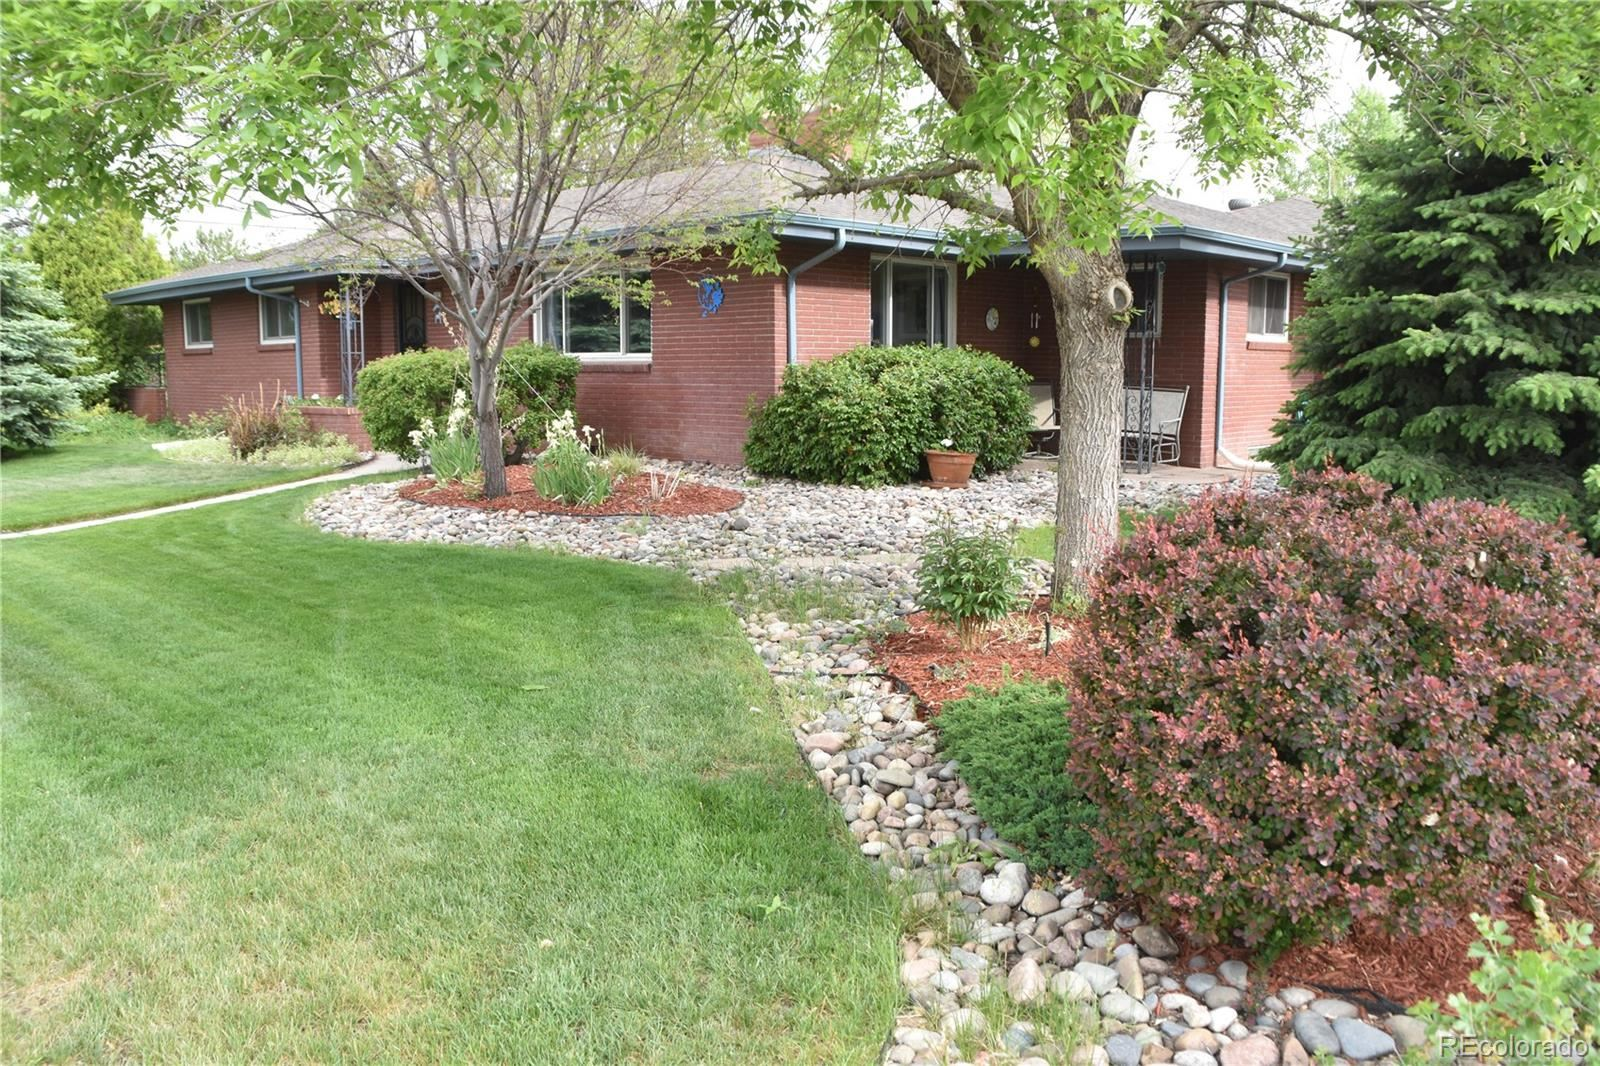 1005 Hoover Avenue, Fort Lupton, CO 80621 - #: 1859704